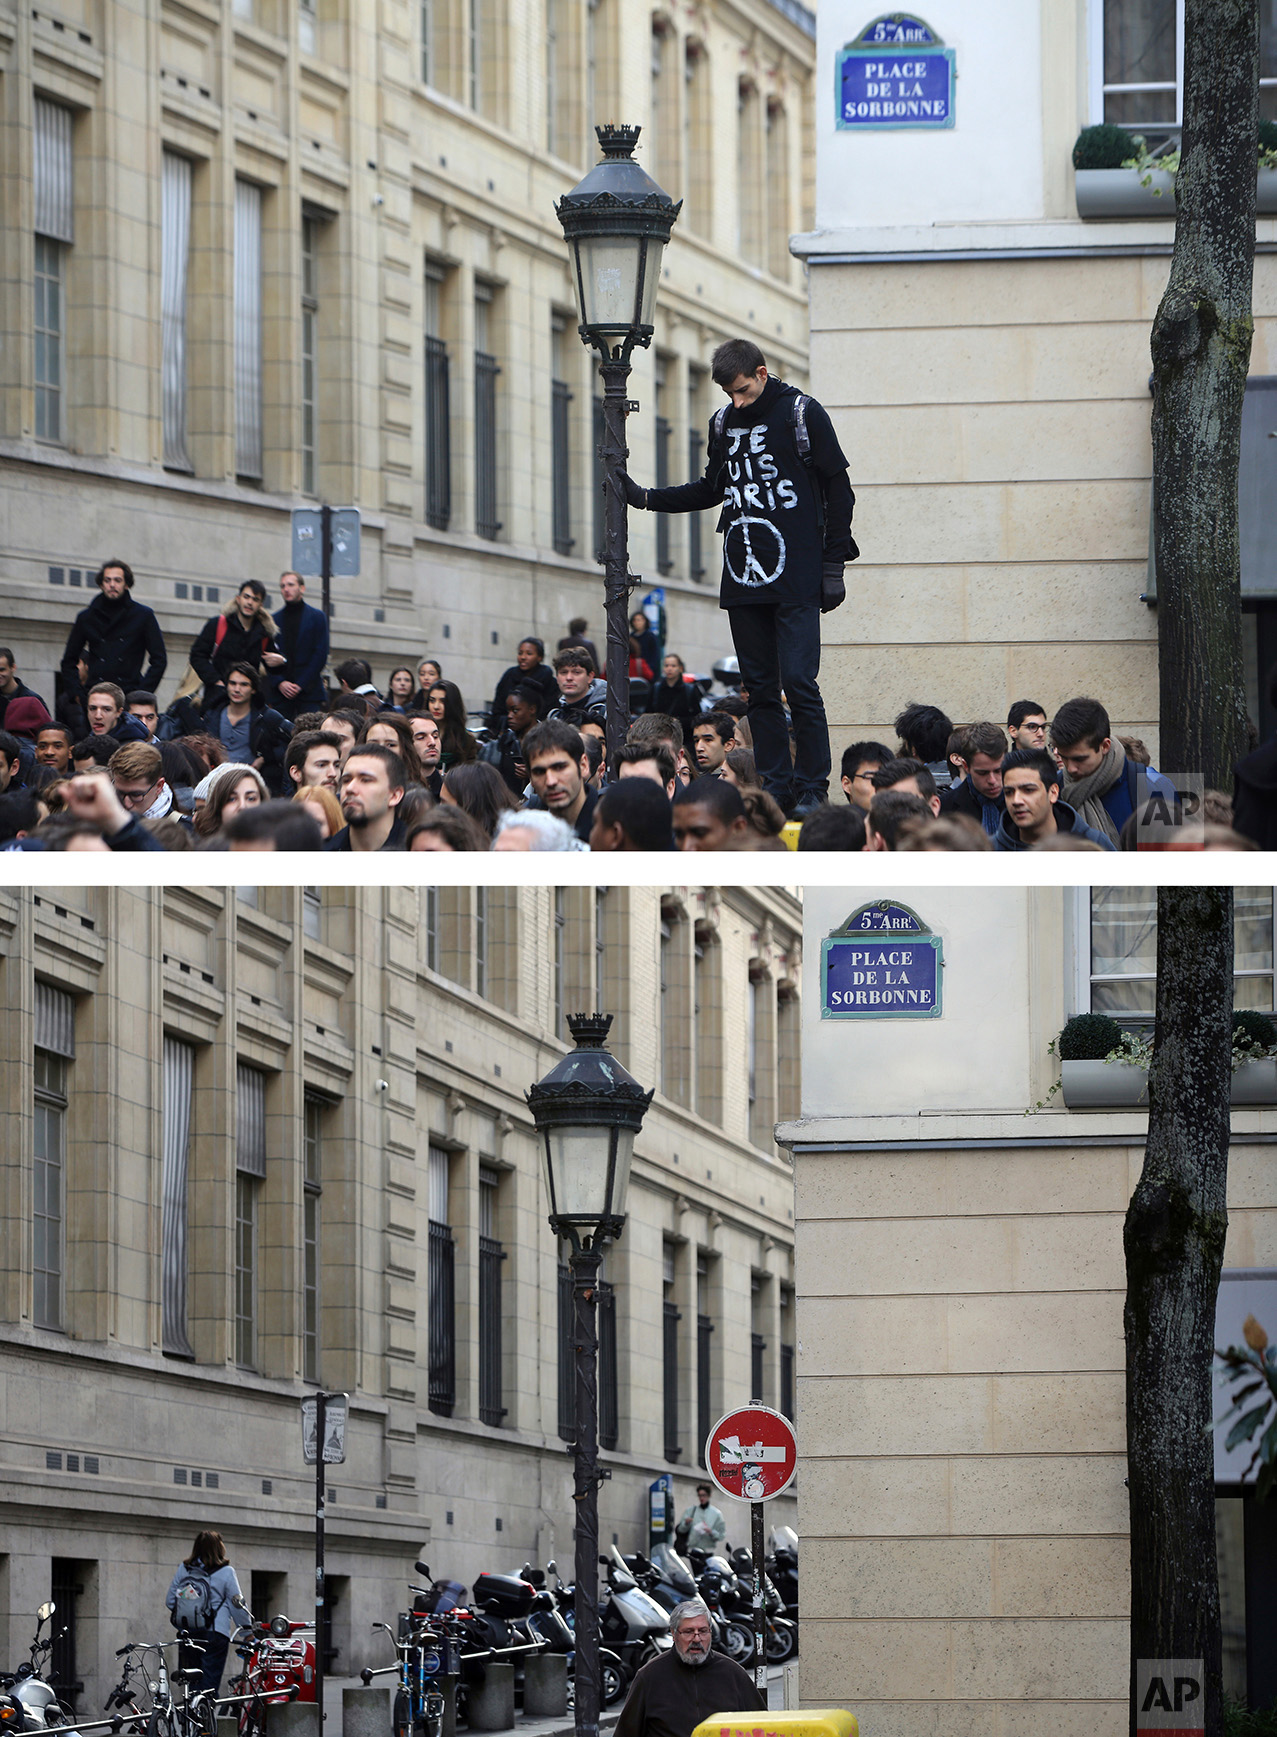 """This combination of two photos shows a Monday, Nov. 16, 2015 photo, top, of a man wearing a t-shirt reading """"I am Paris"""", observing a minute silence, outside the Sorbonne university, in Paris, after the deadly attacks, and people walking through the streets, bottom, on Tuesday, Nov. 8, 2016. (AP Photo/Thibault Camus, Thibault Camus)"""